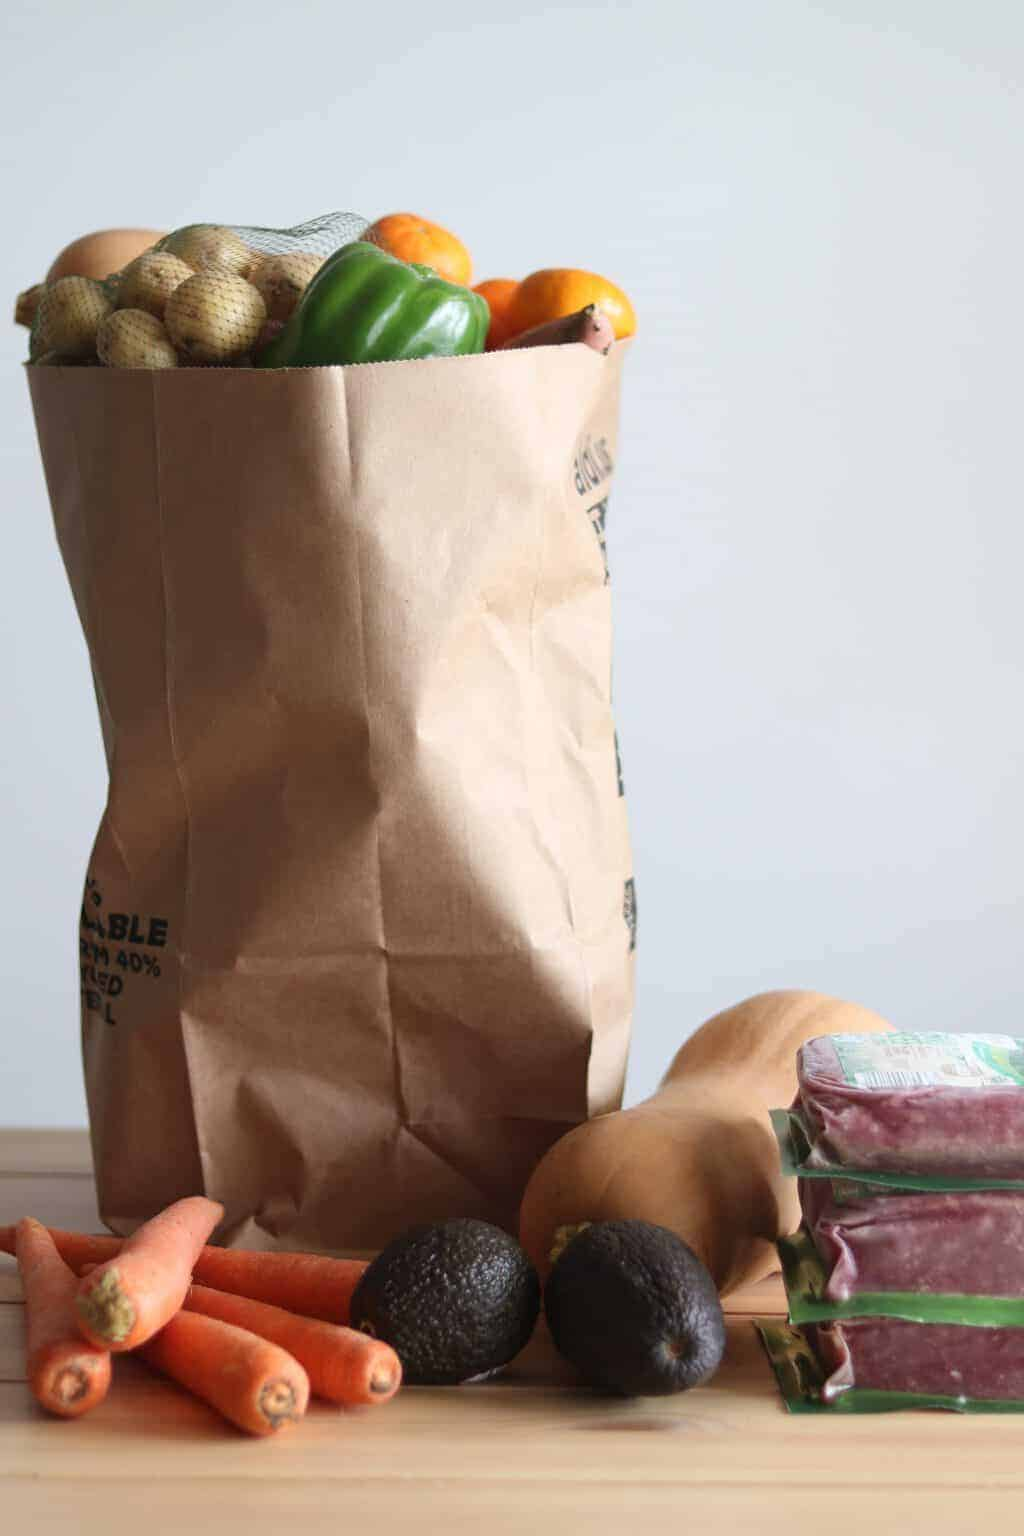 Fresh veggies and meet in brown paper shopping bag and on table.